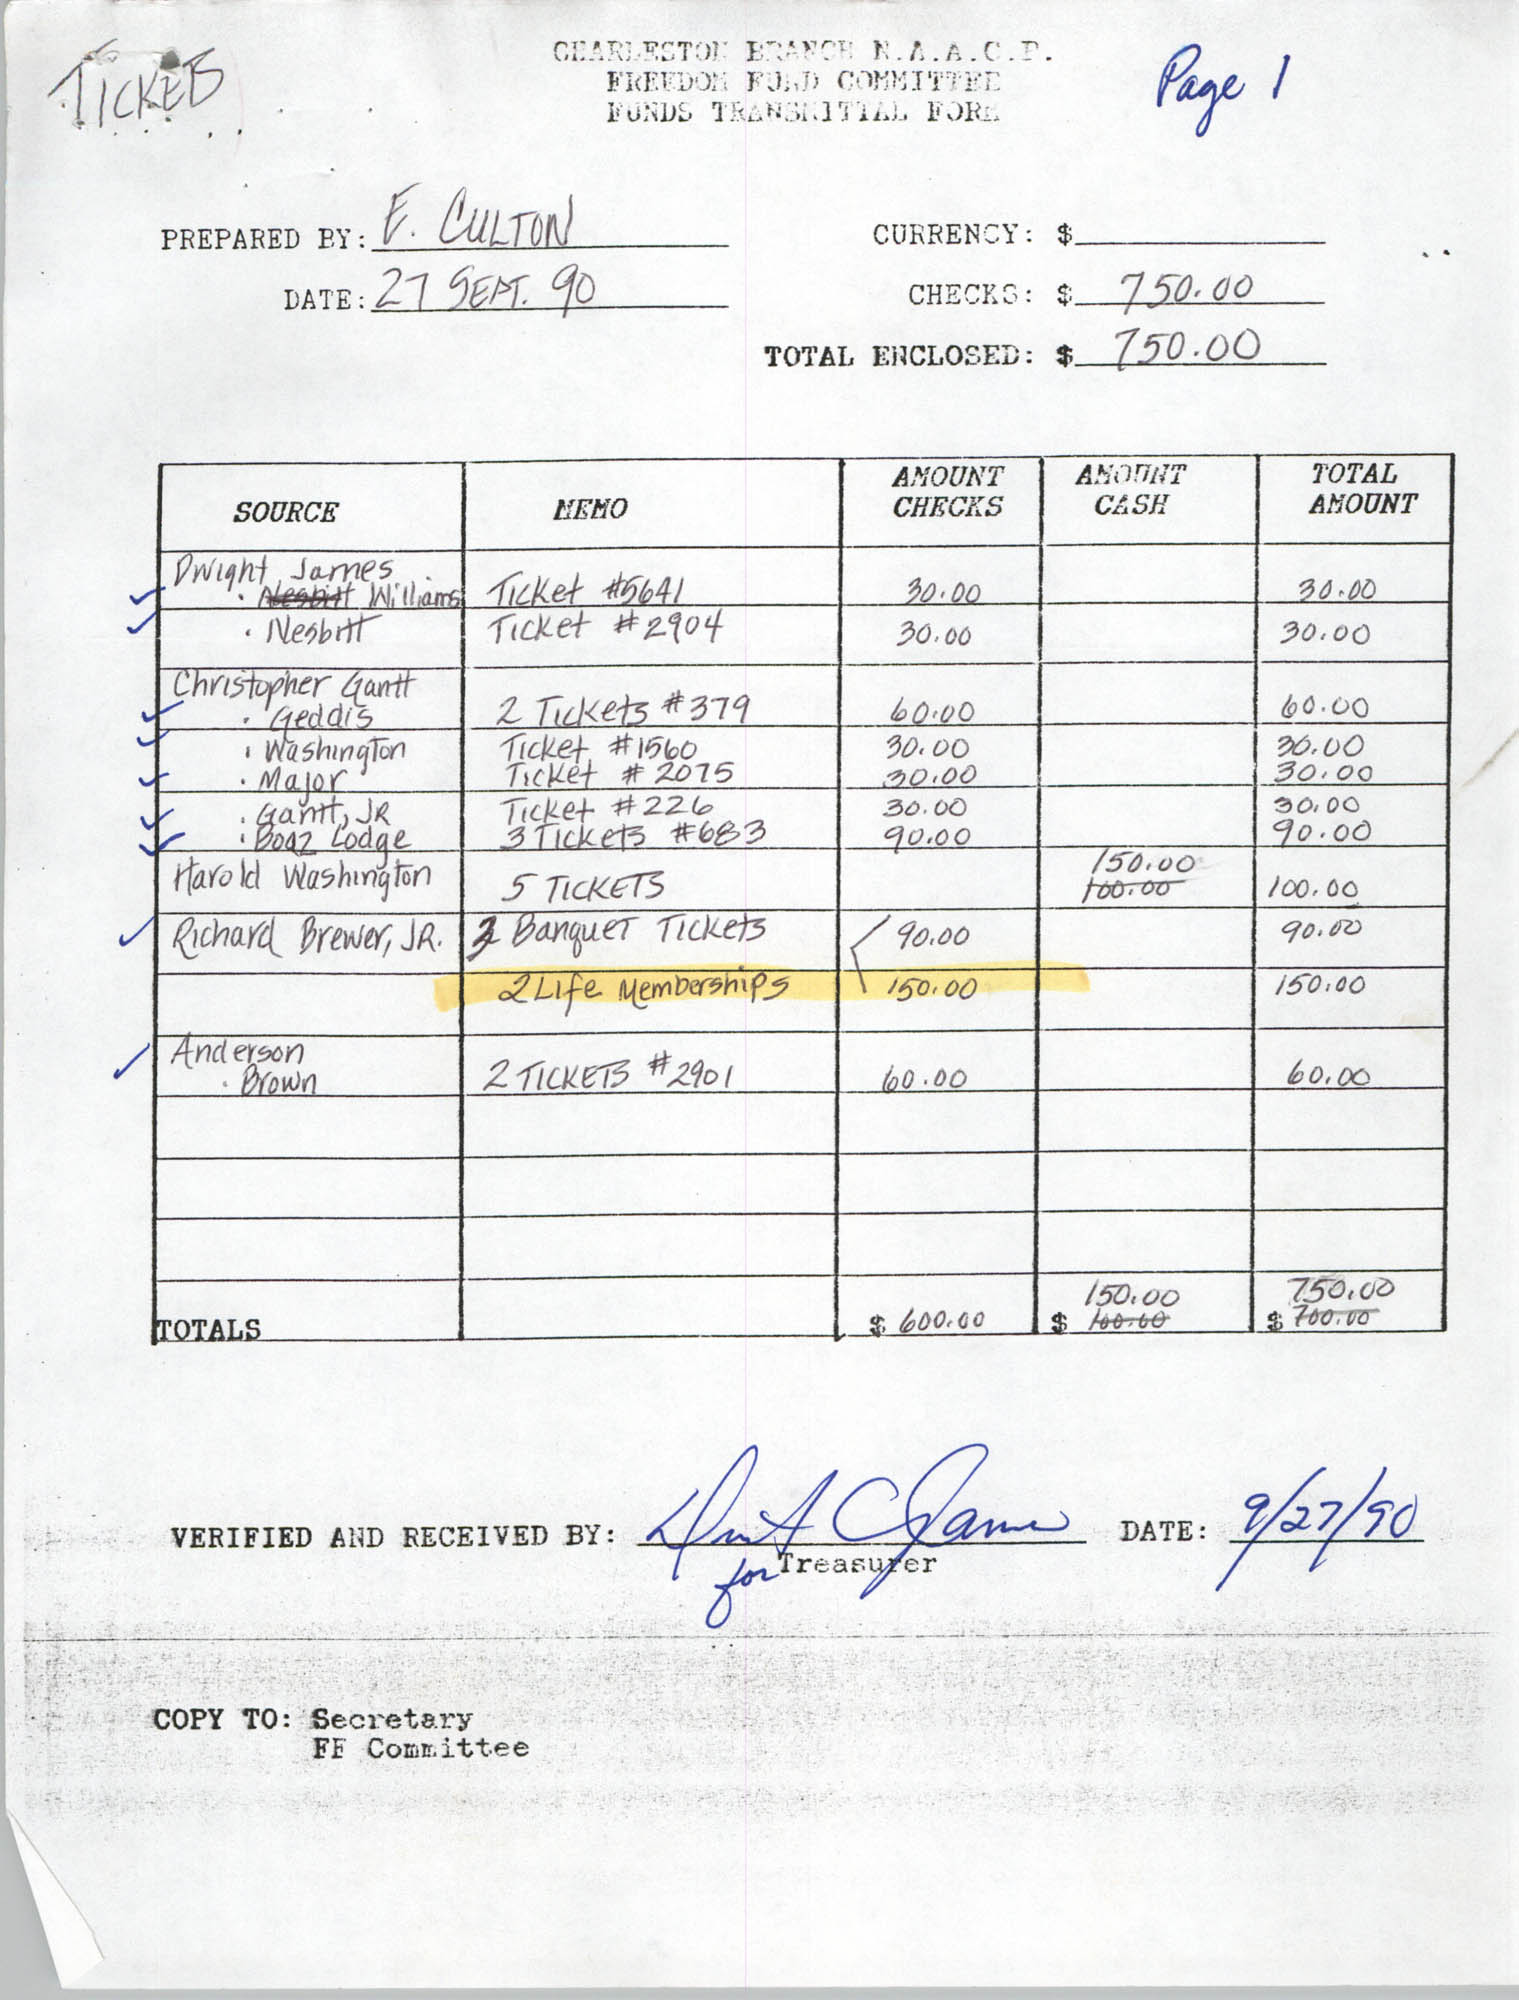 Charleston Branch of the NAACP, Funds Transmittal Forms, October 1990, Page 1